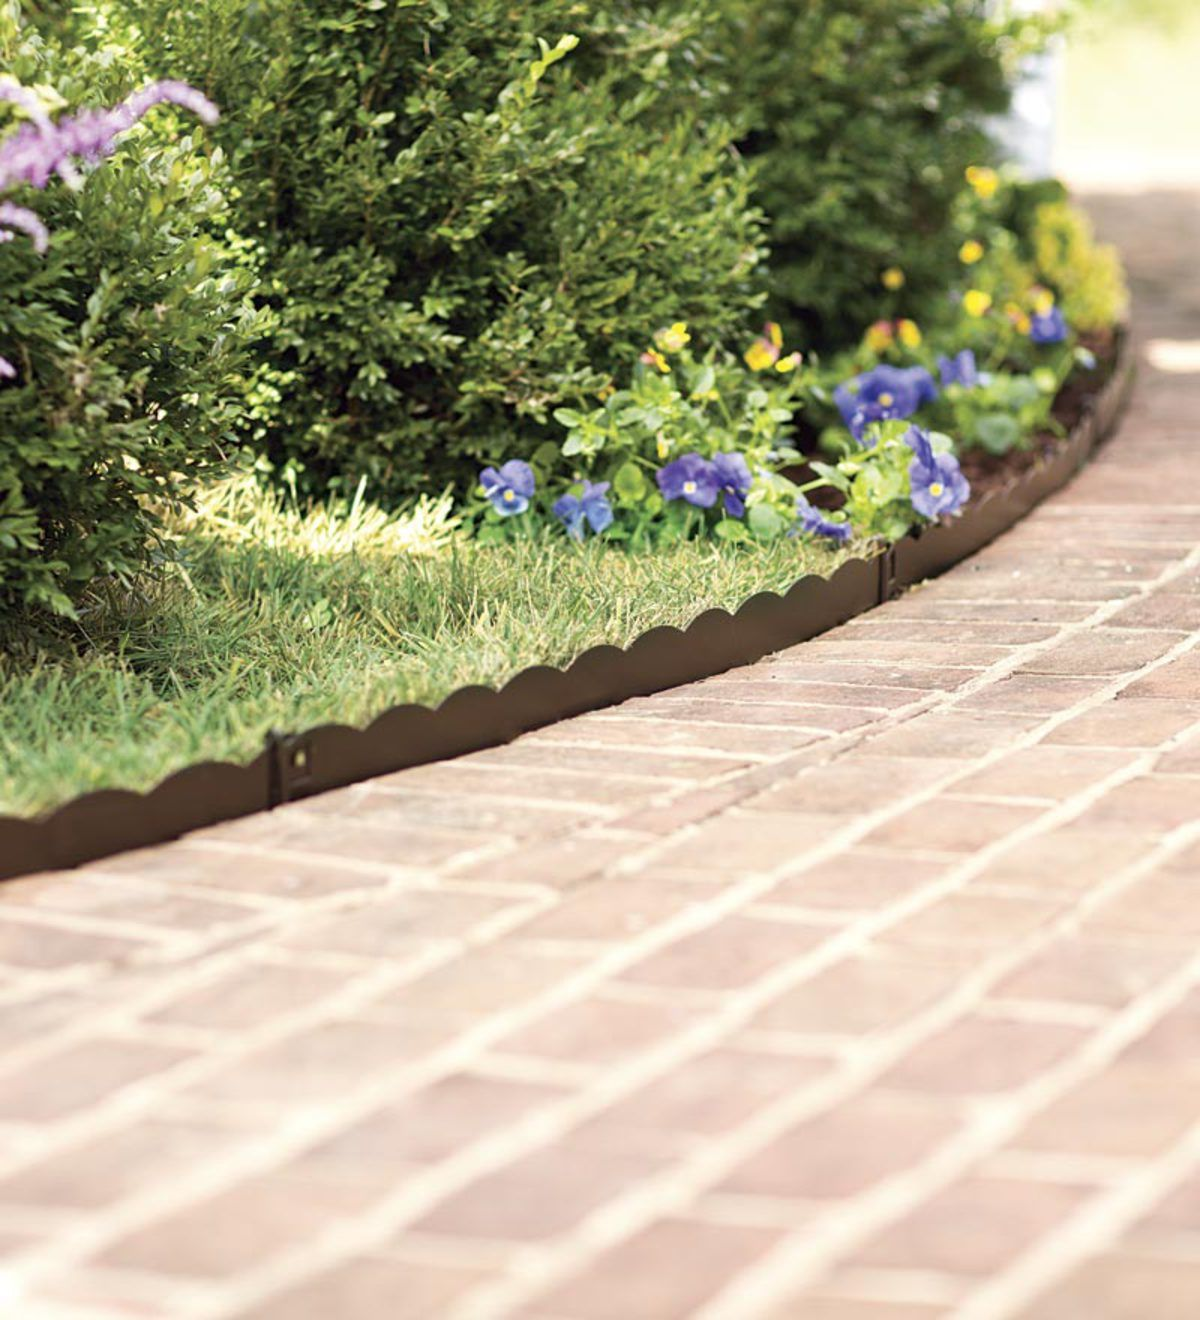 Easy To Use Bendable Steel Garden Edging Fits Around Curved Beds For A Finished Professional Look Garden Edging Steel Garden Edging Backyard Garden Landscape